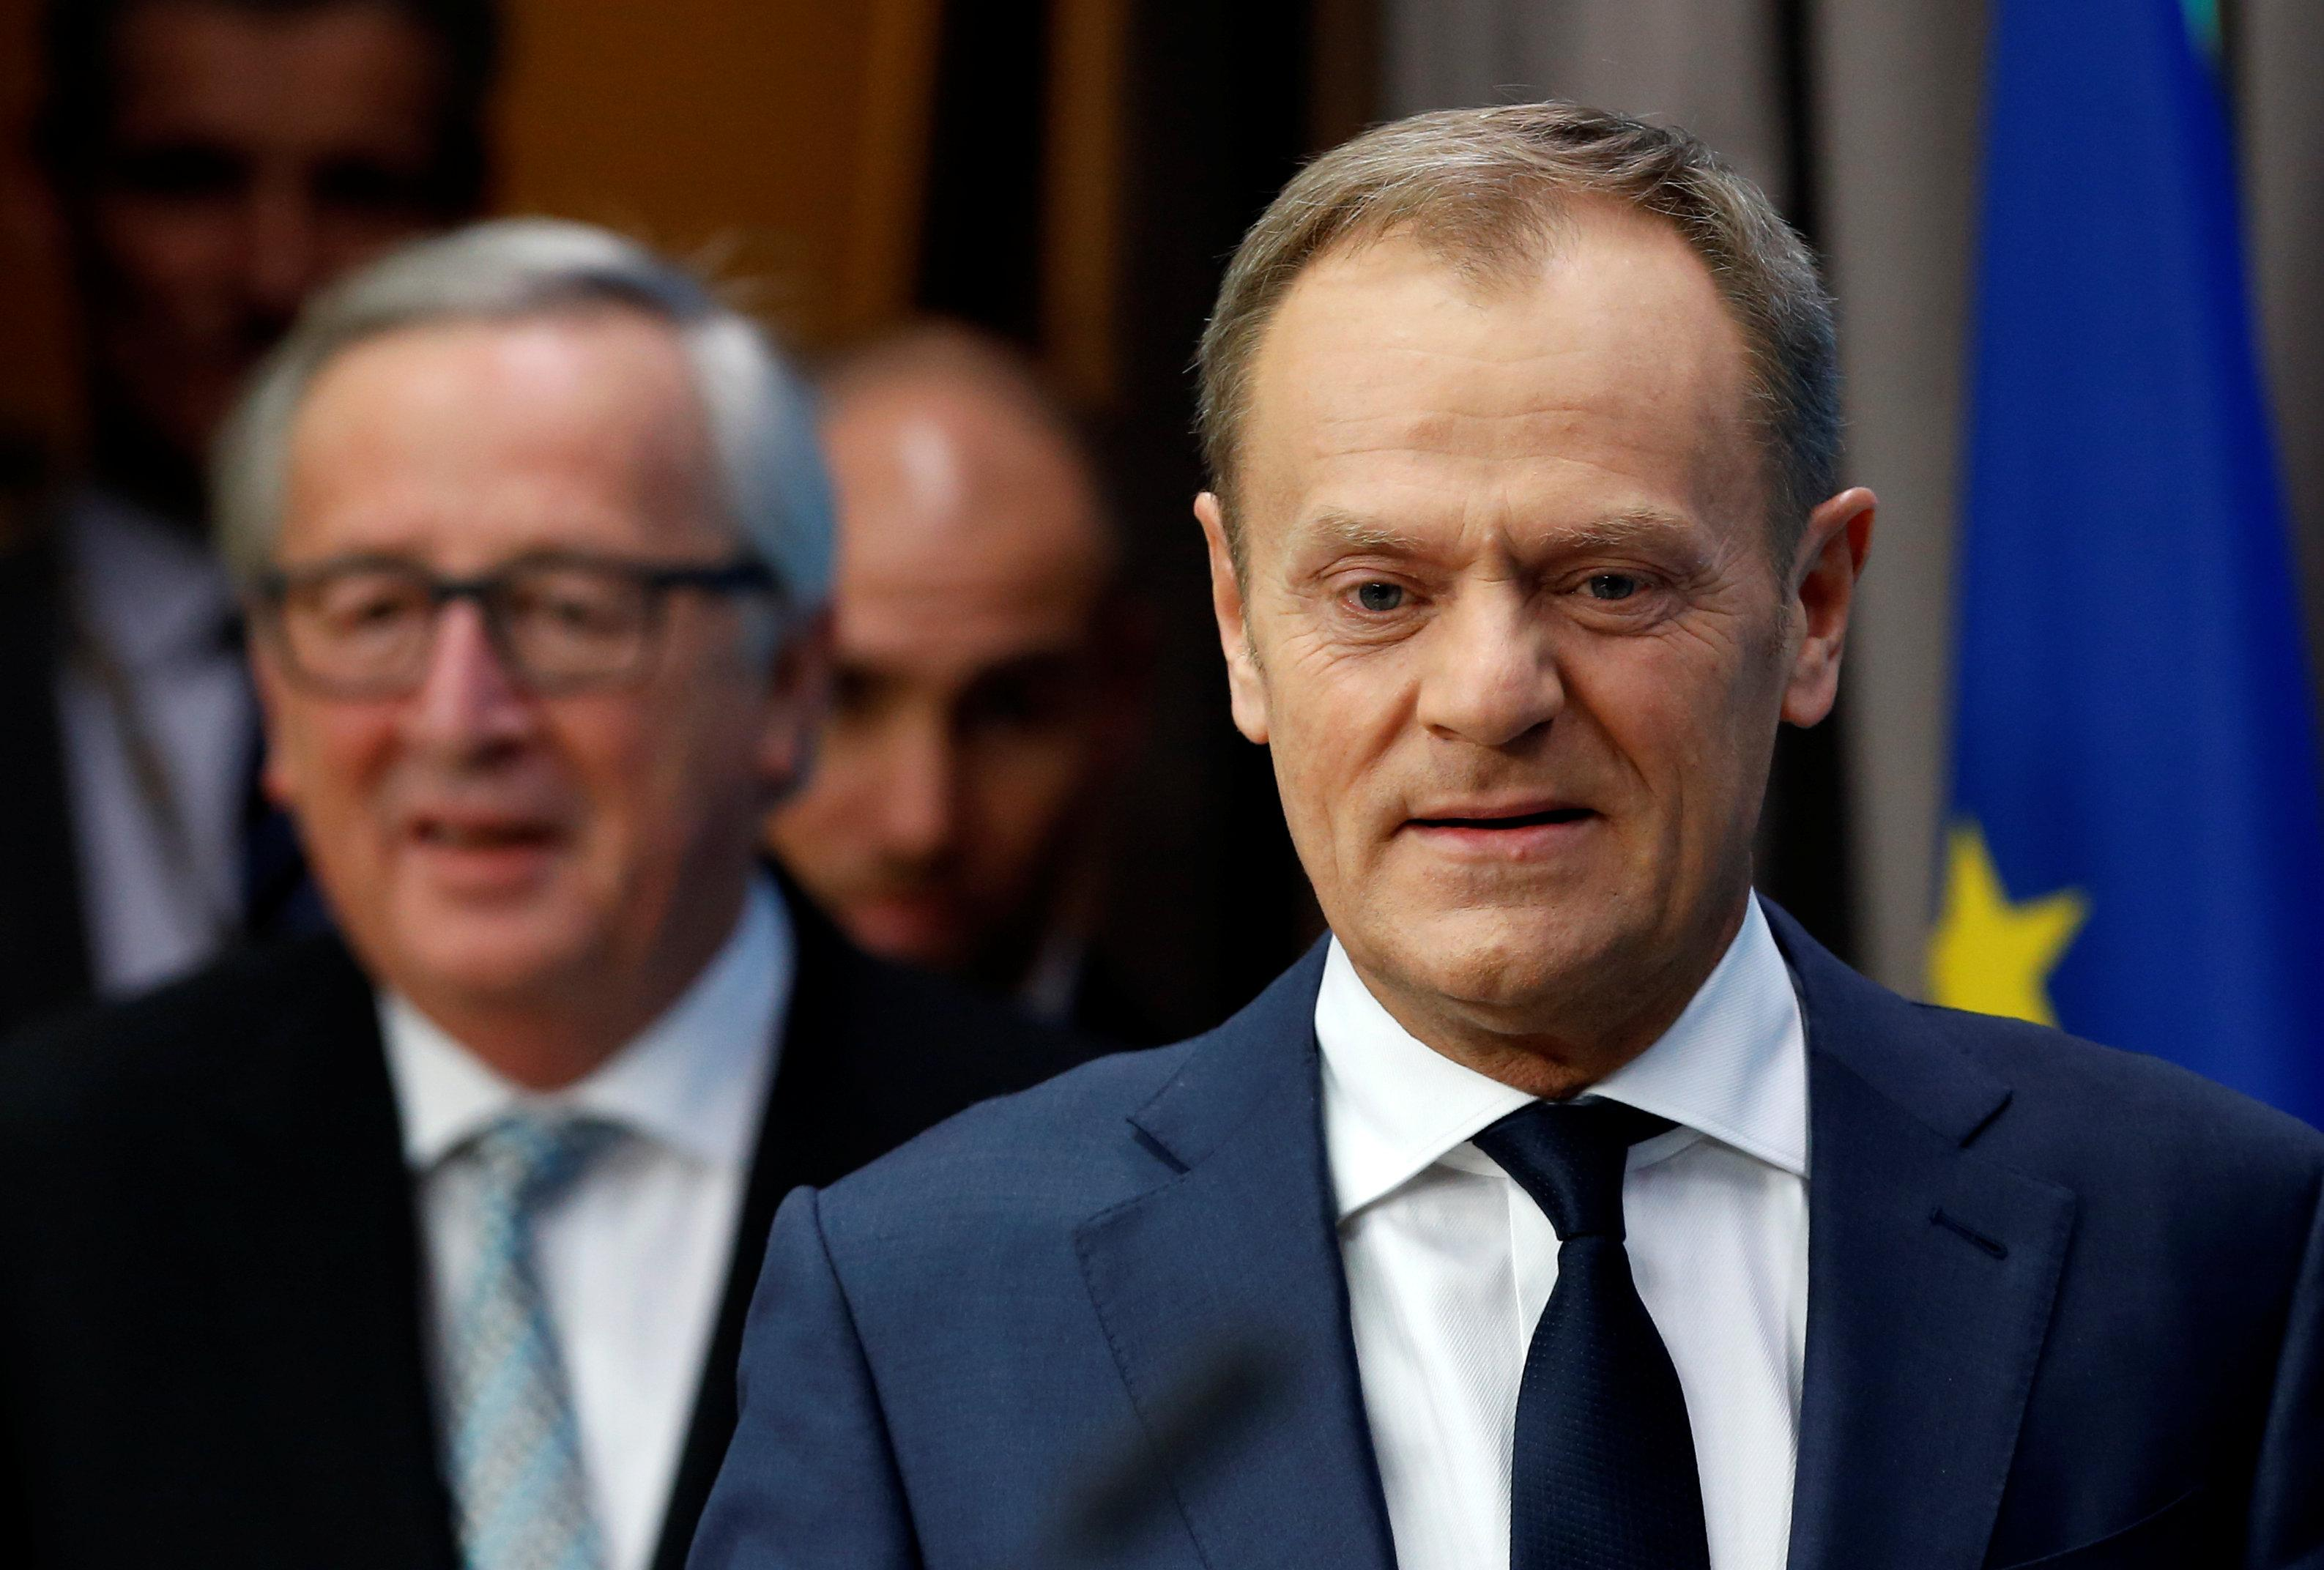 Tusk expects joint EU stance on post-Brexit ties with Britain in March